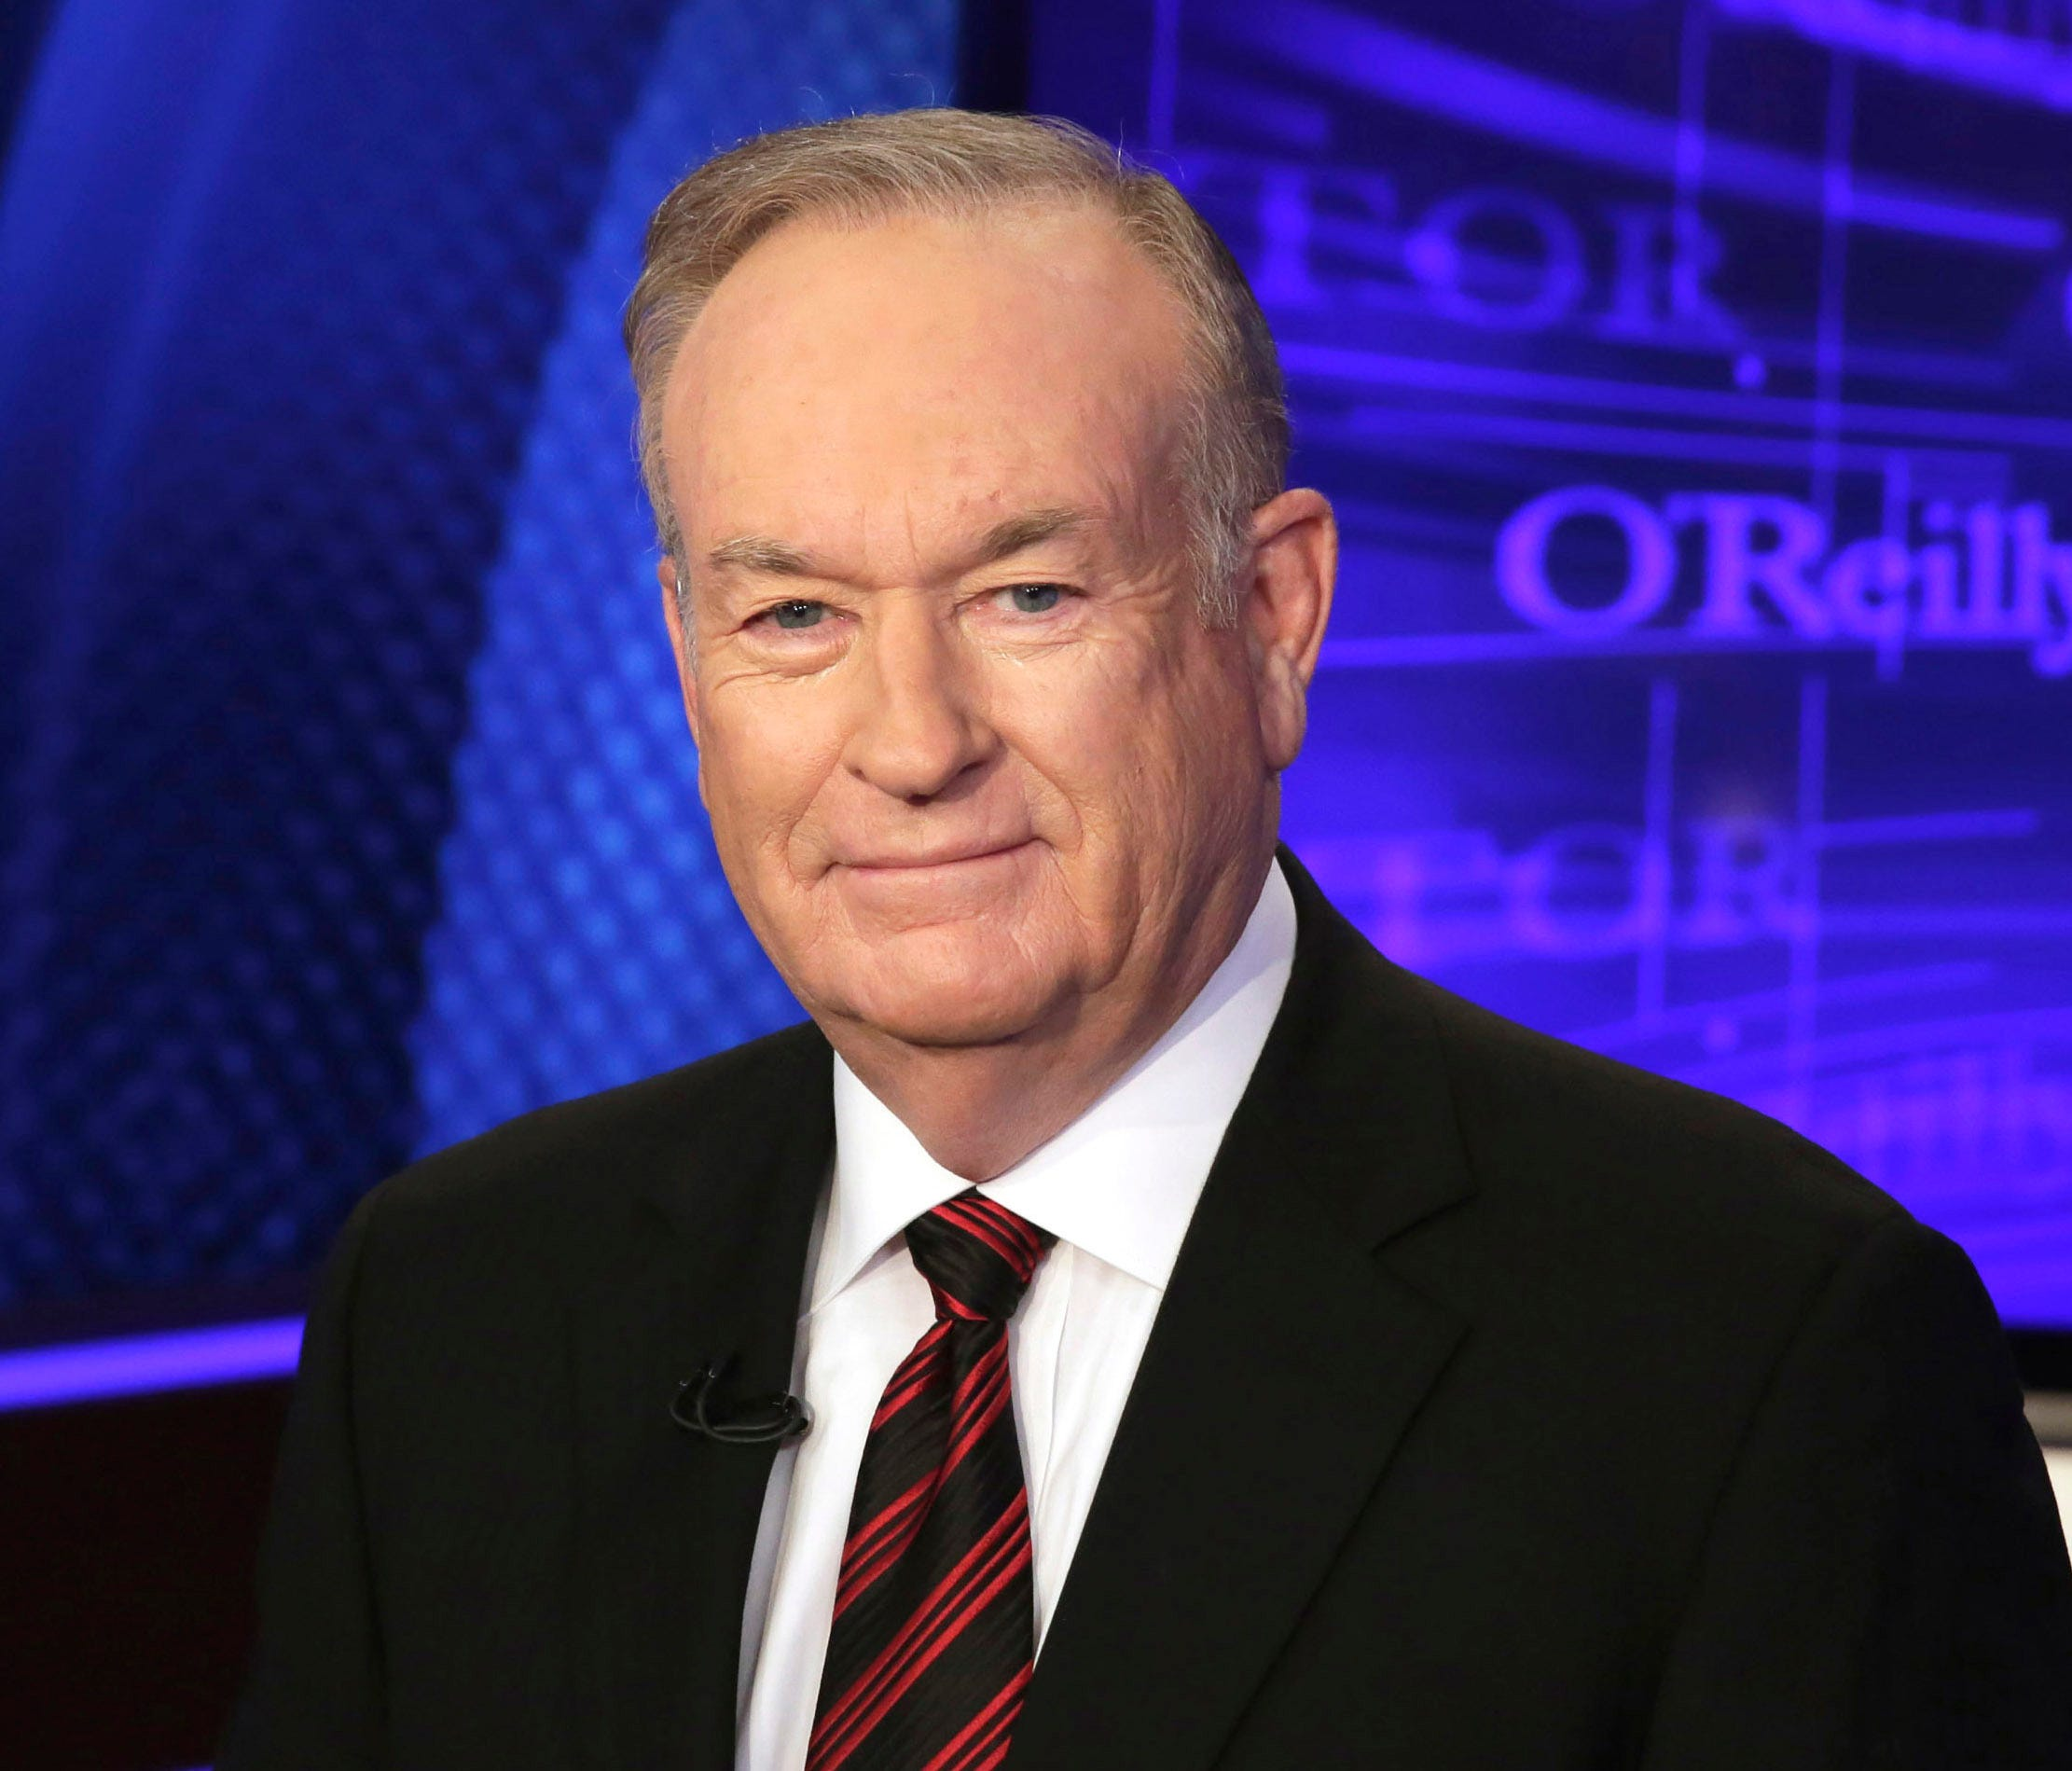 Bill O'Reilly of the Fox News Channel program